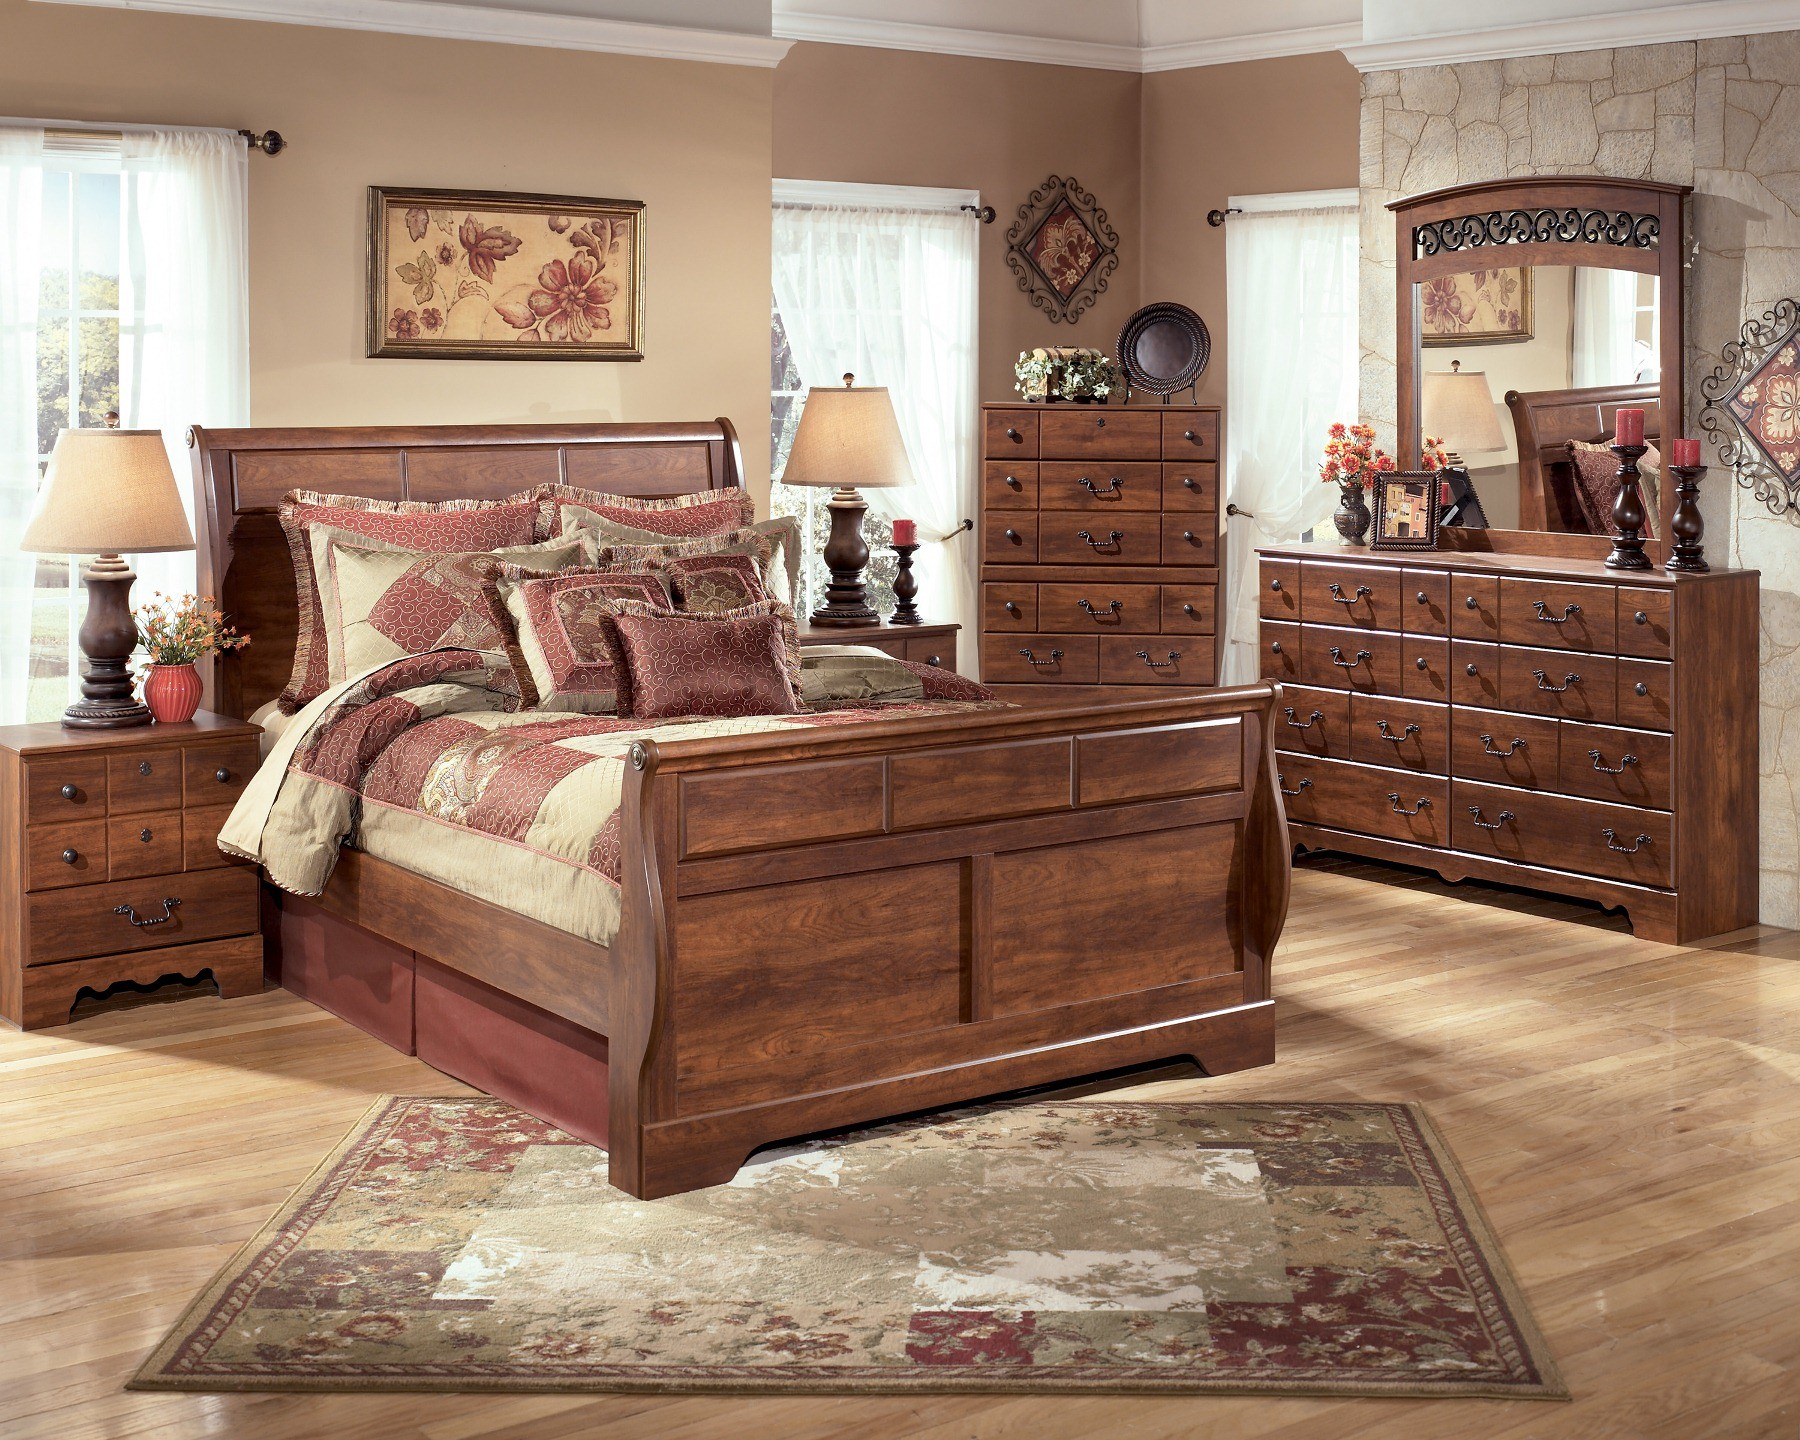 Timberline Queen Sleigh Bed From Ashley B258 57 54 96 Coleman Furniture